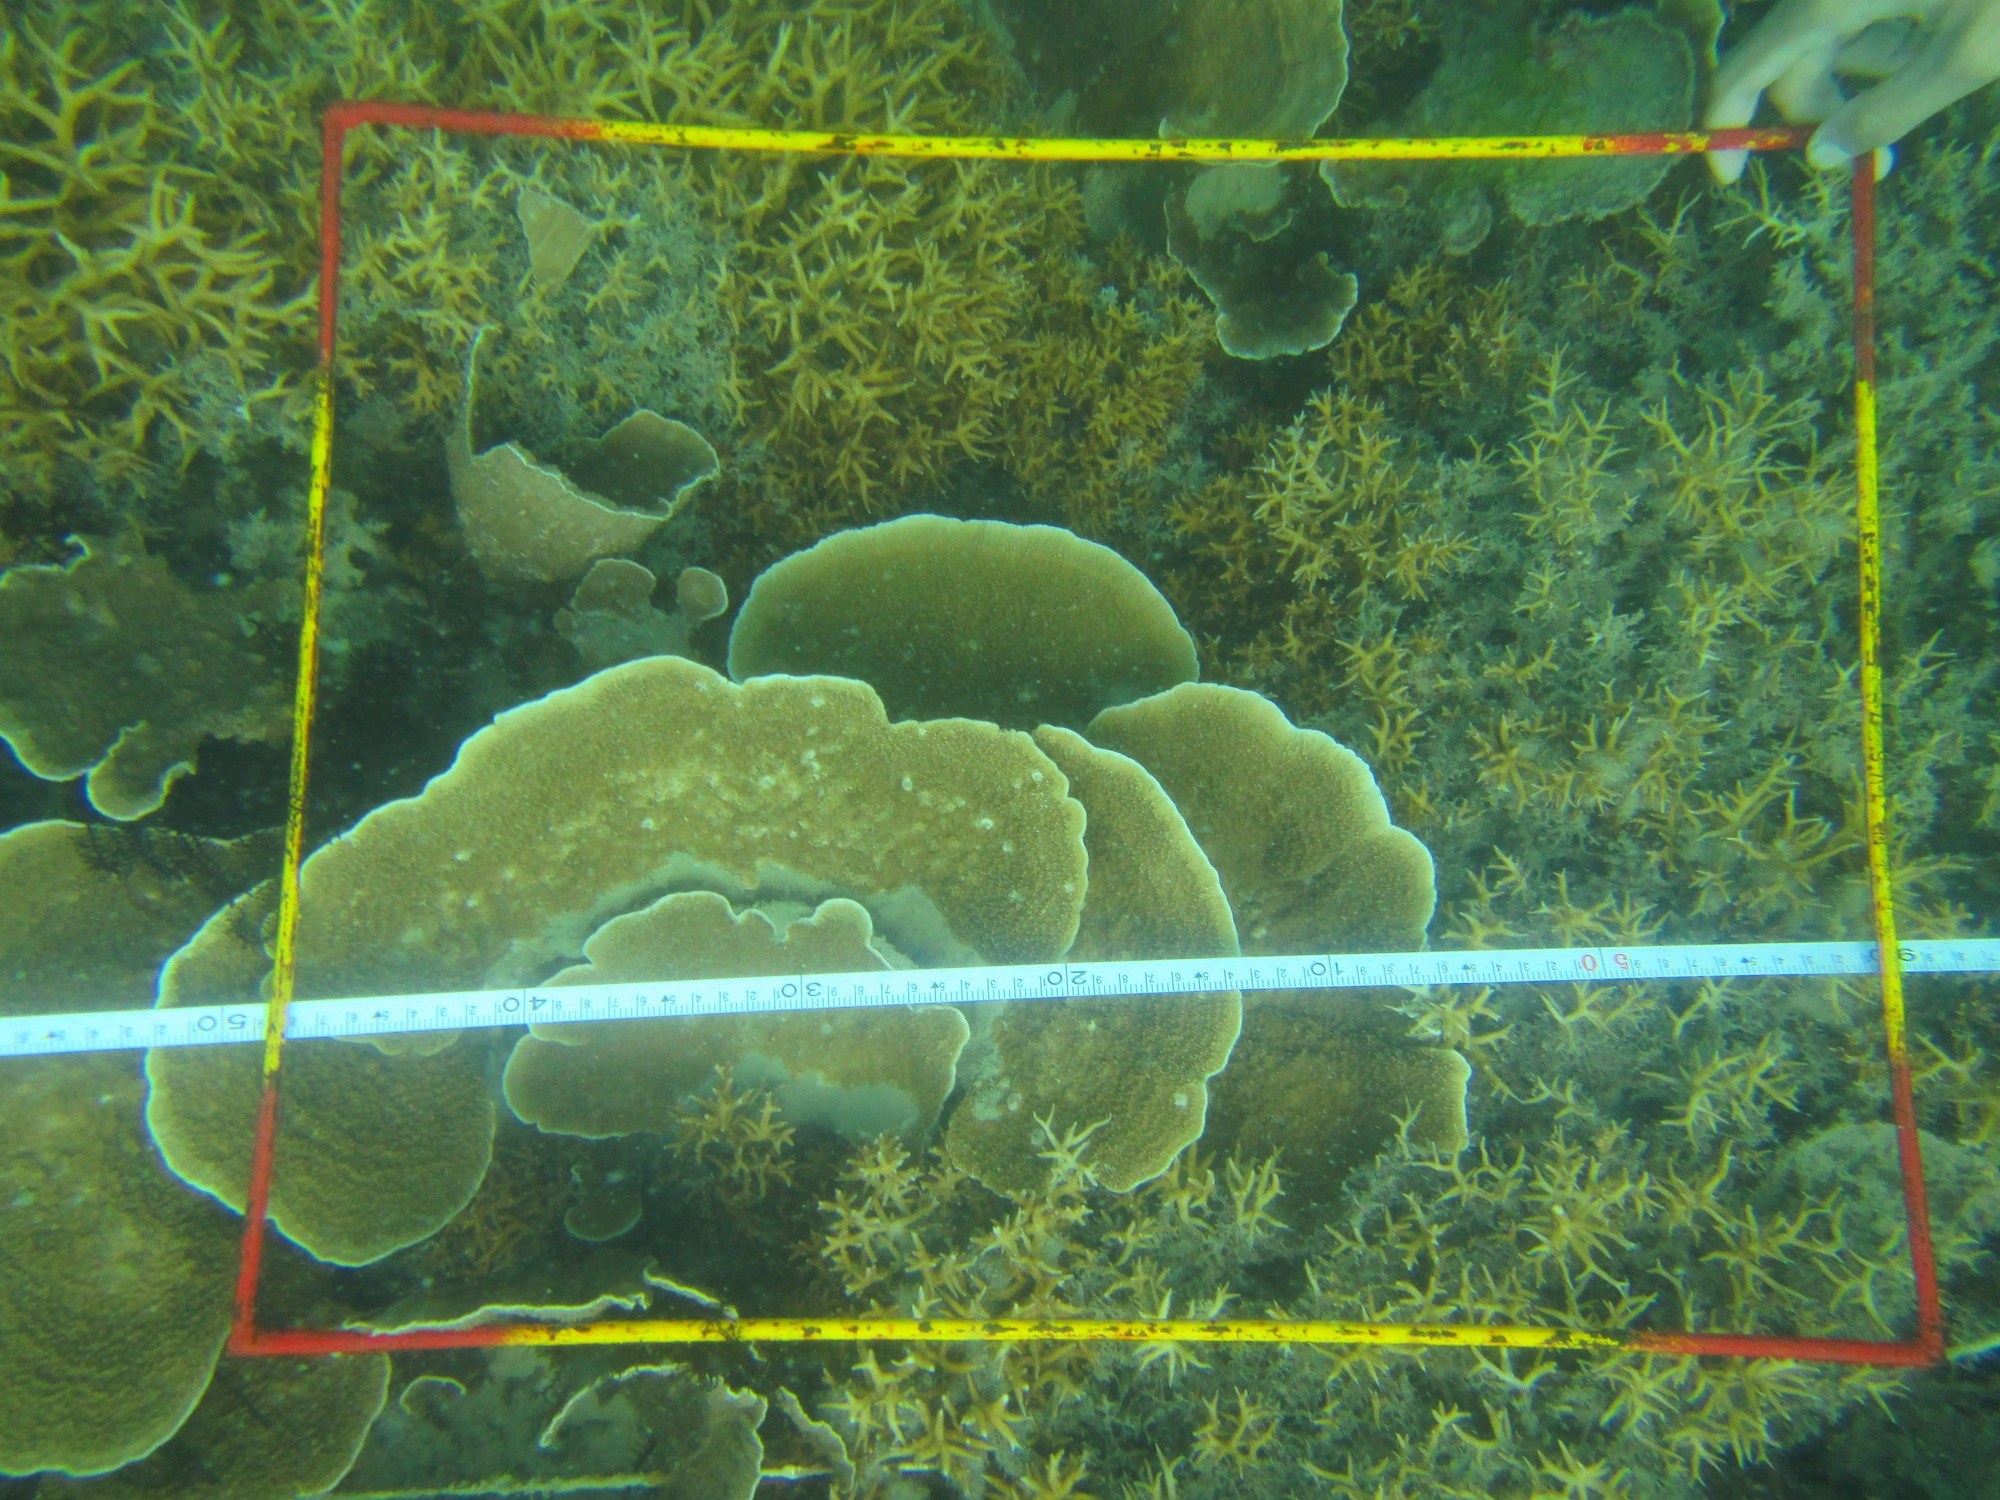 Metode Underwater Photo Transect (UPT)